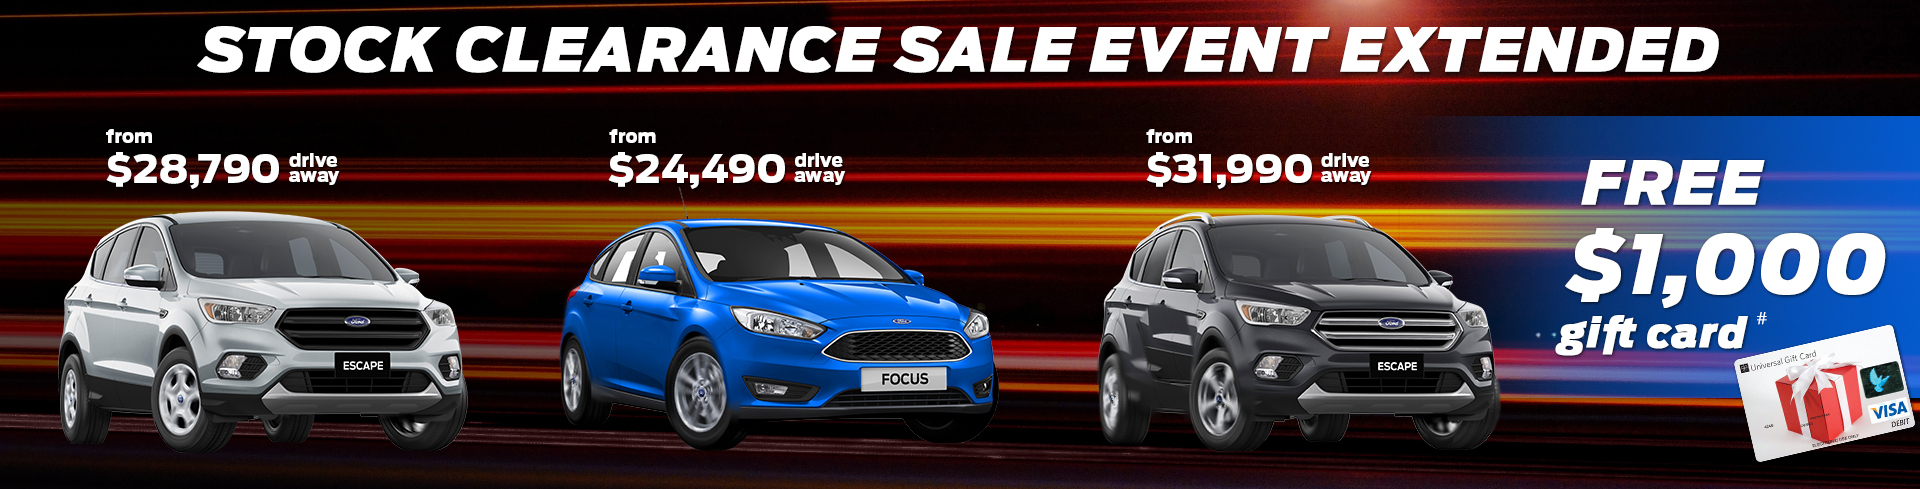 Macarthur Ford Campbelltown Stock Clearance Sale Event